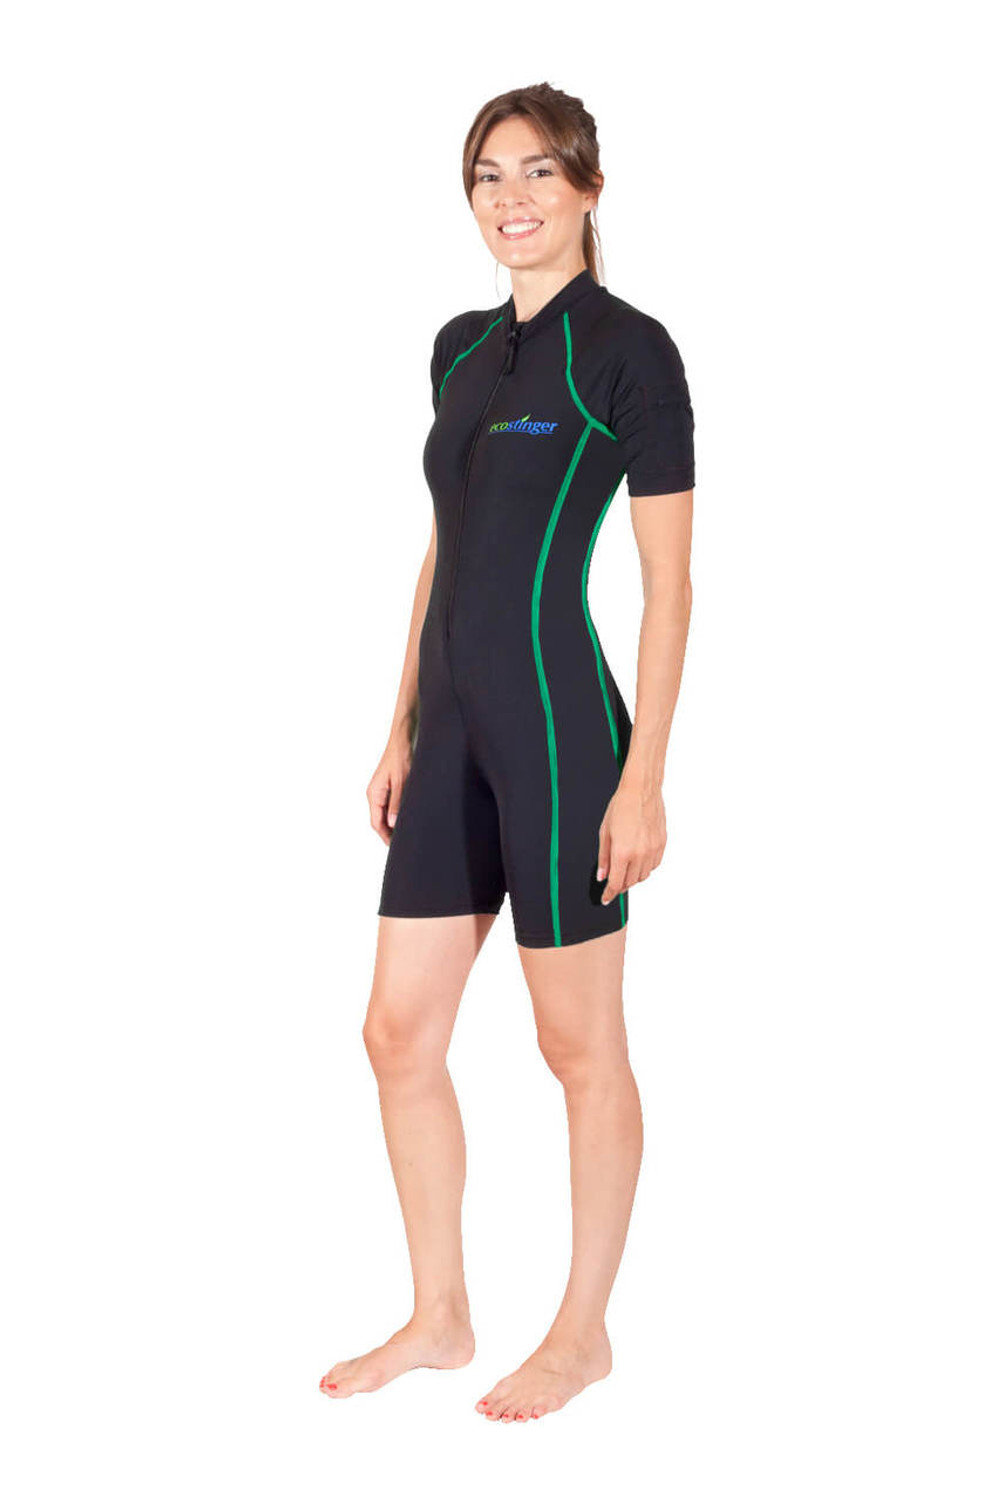 aa2ccfd8cf Women Sunsuit Short Sleeves + Pocket UV Protective Swimwear UPF50+ (Chlorine  Resistant)